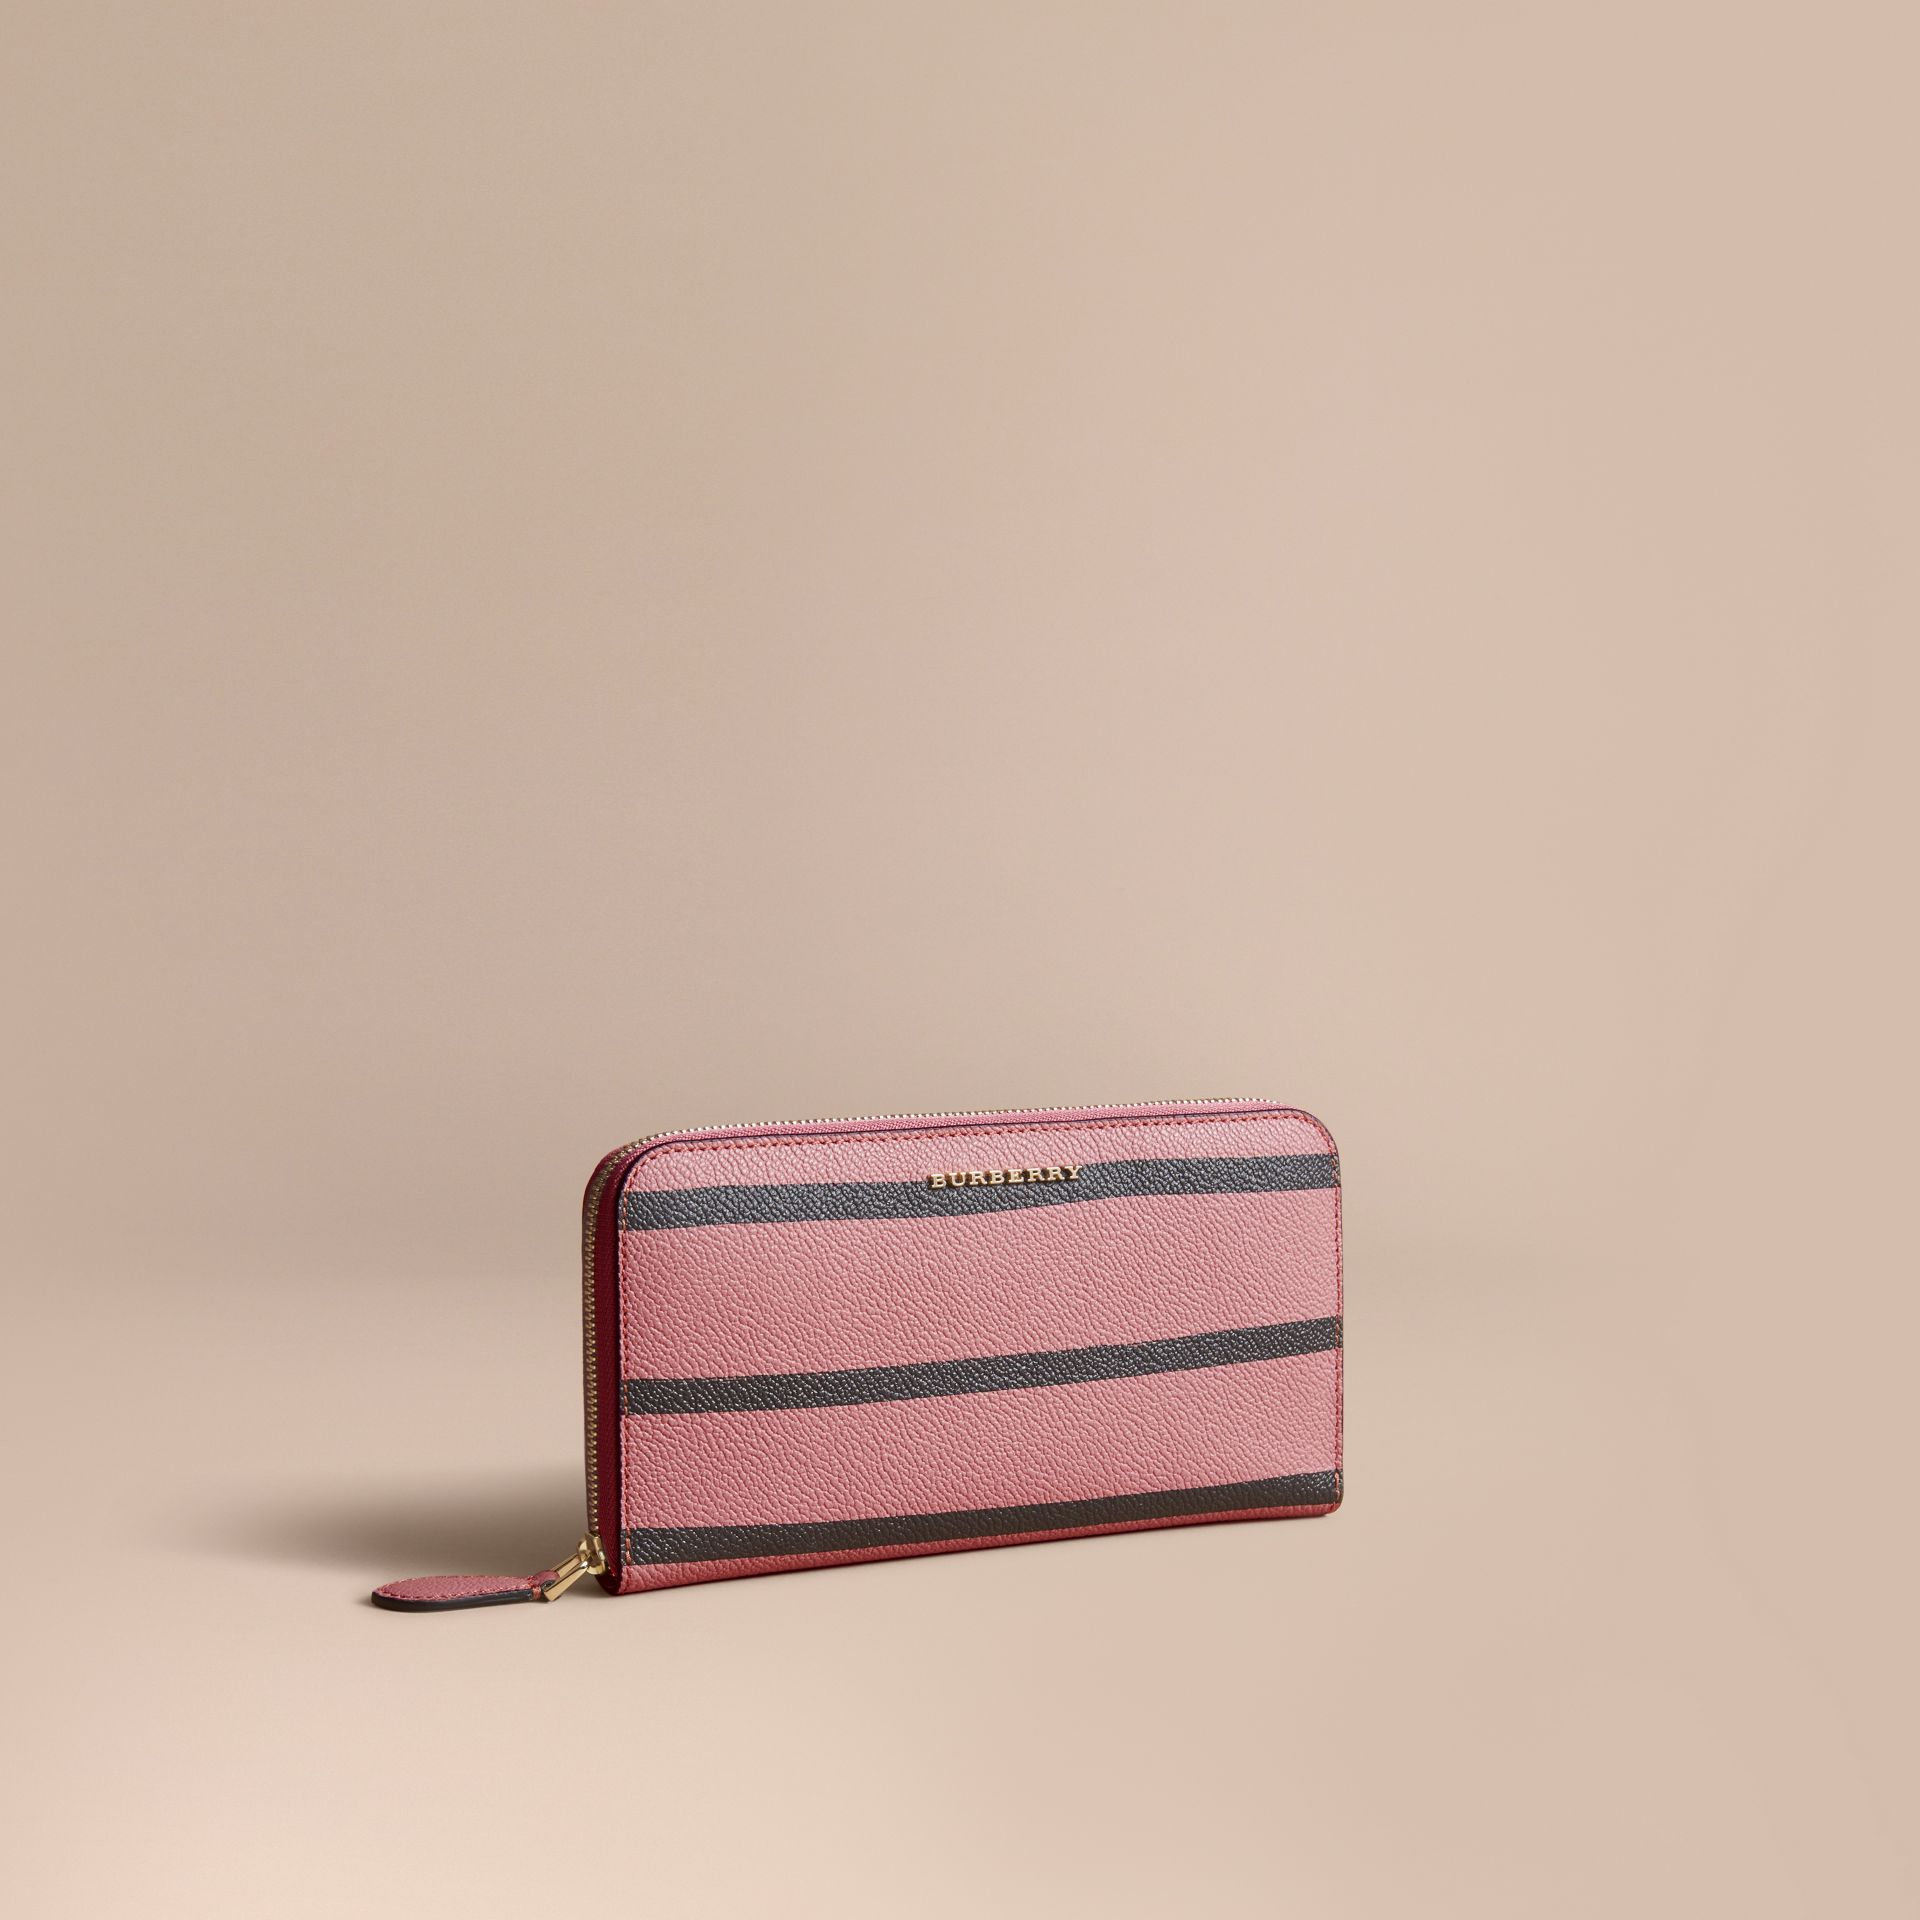 Trompe L'oeil Print Leather Ziparound Wallet in Dusty Pink - Women | Burberry - gallery image 2